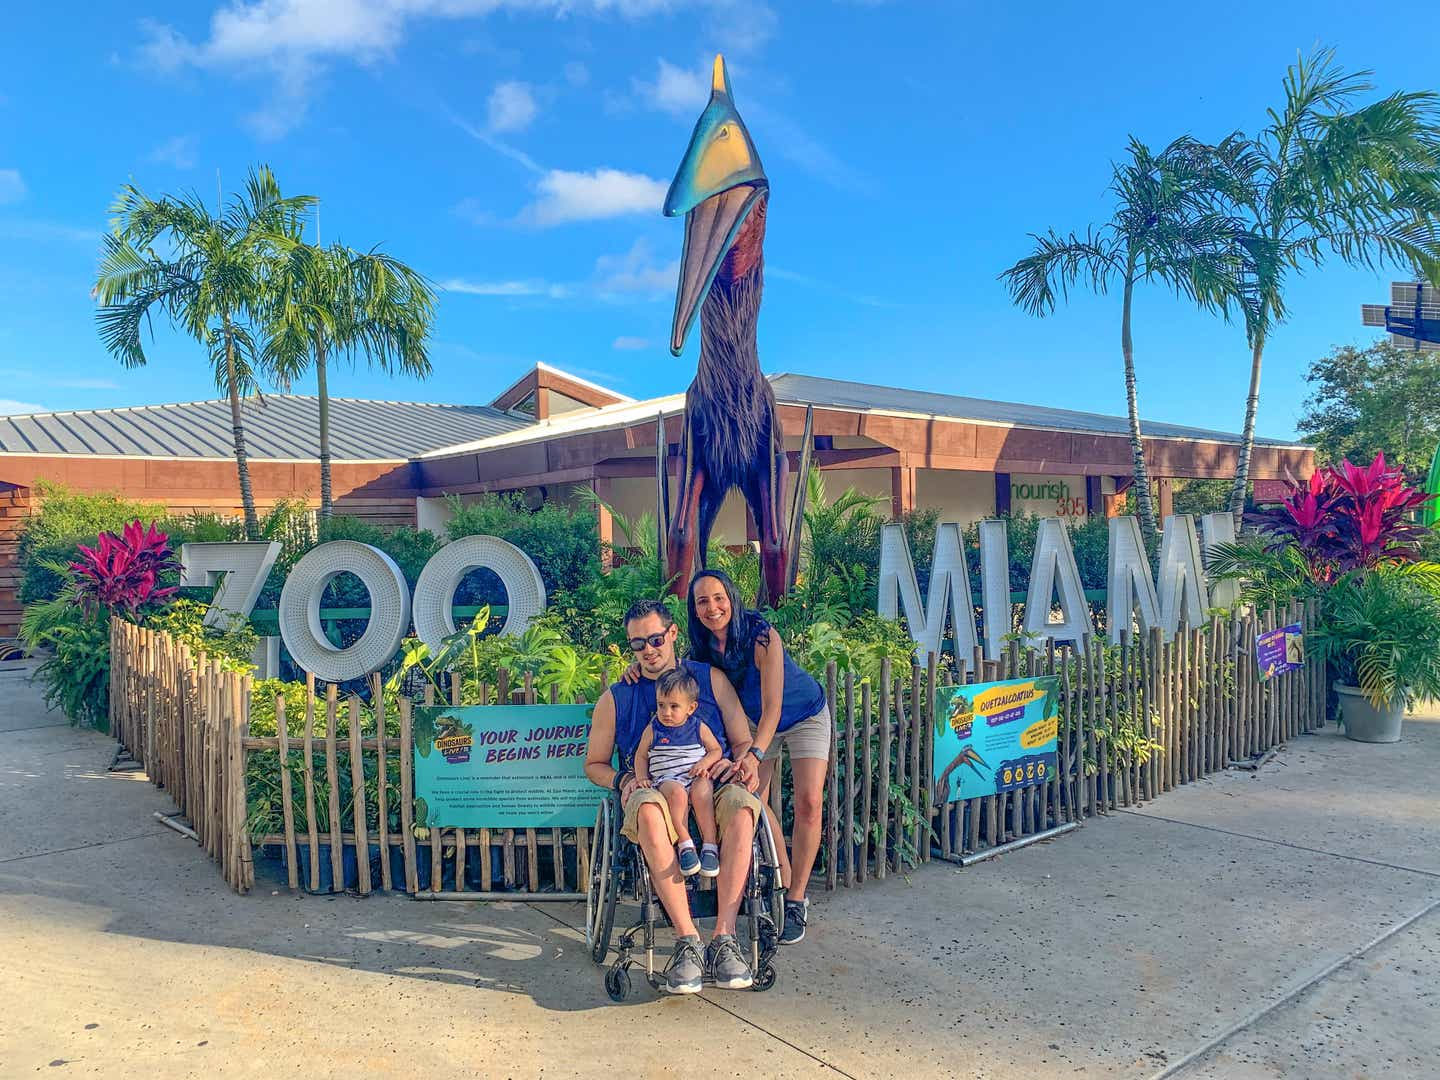 Danny and his family in front of the Zoo Miami sign